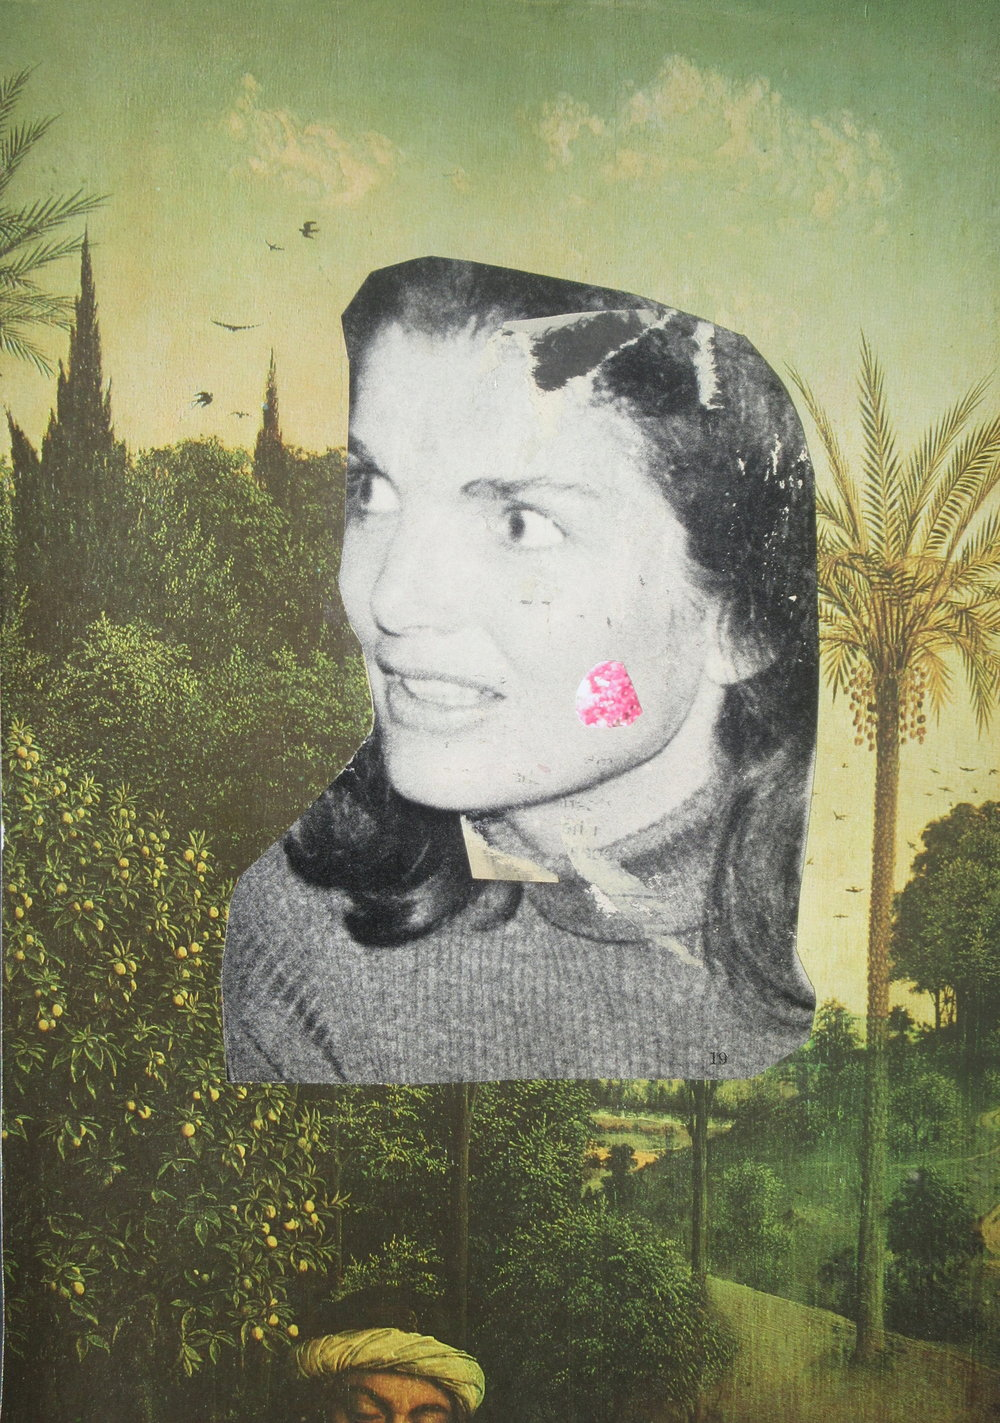 Guy Maddin, Untitled (Jackie), 2016. Collage on paper, 10 x 8 inches